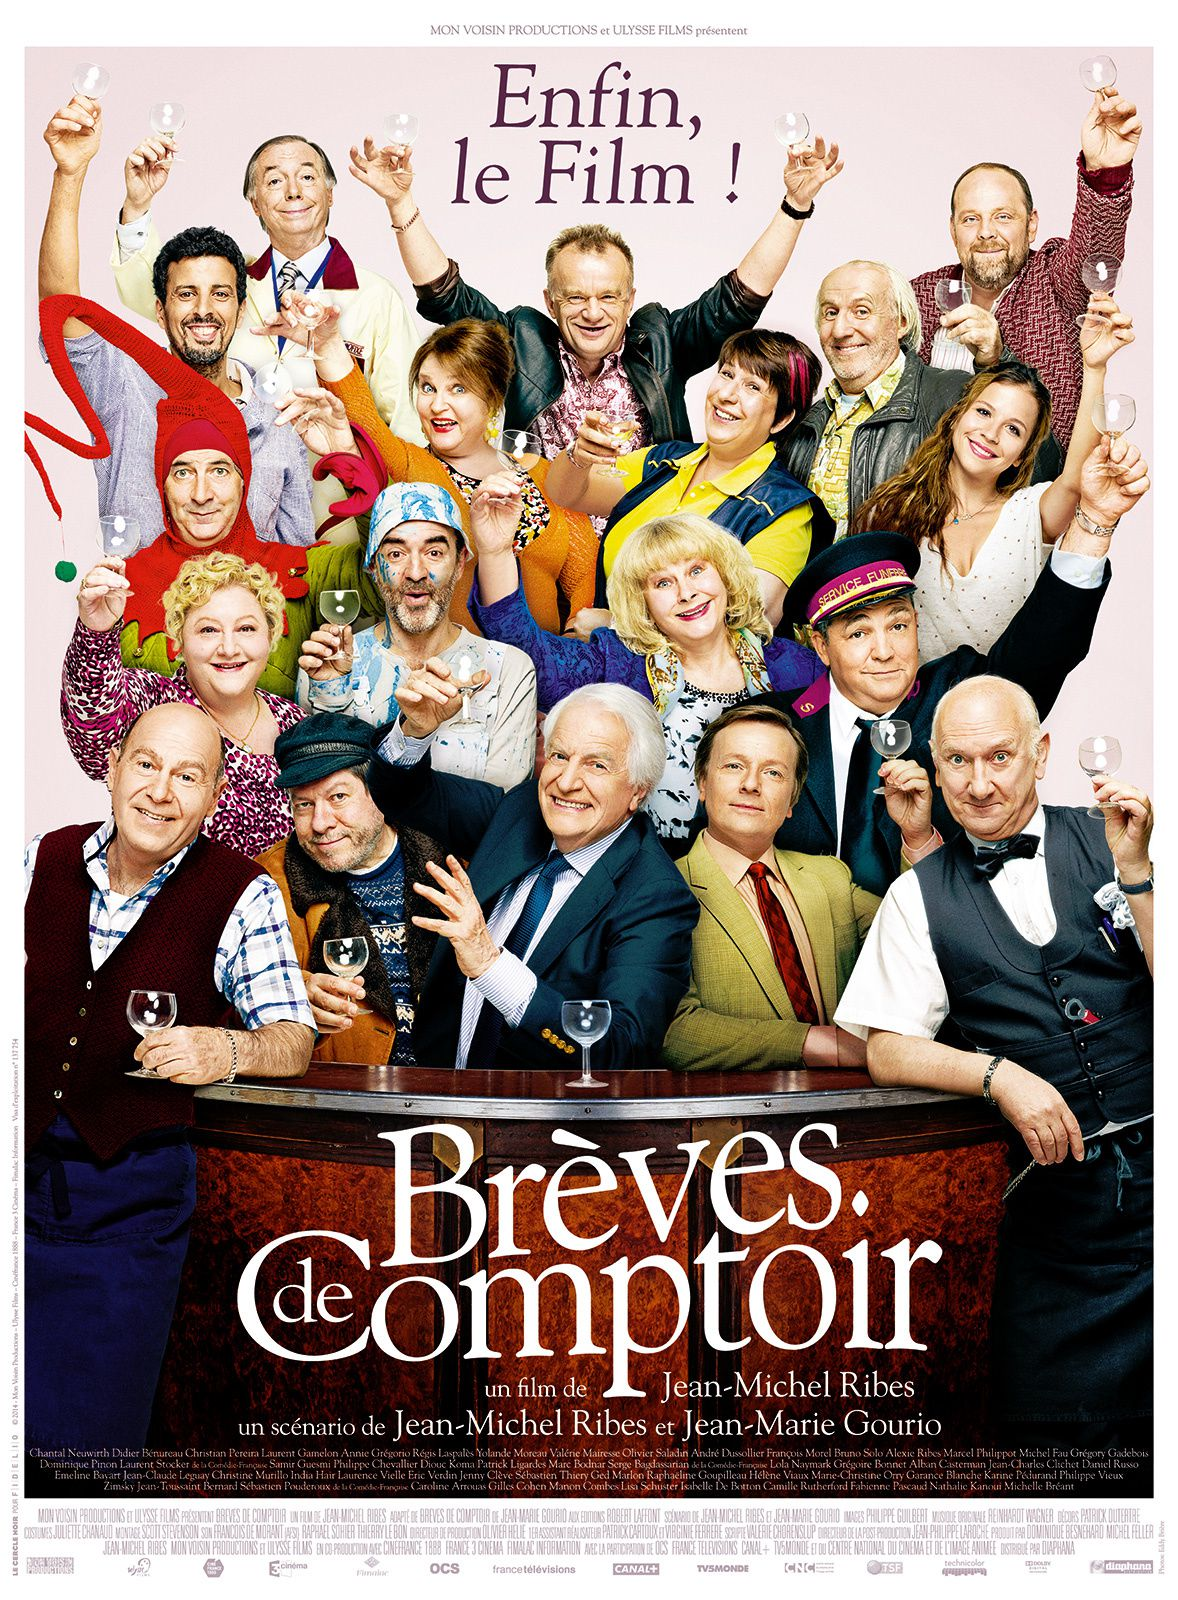 BREVES DE COMPTOIR / CINEMA / JEAN-MICHEL RIBES